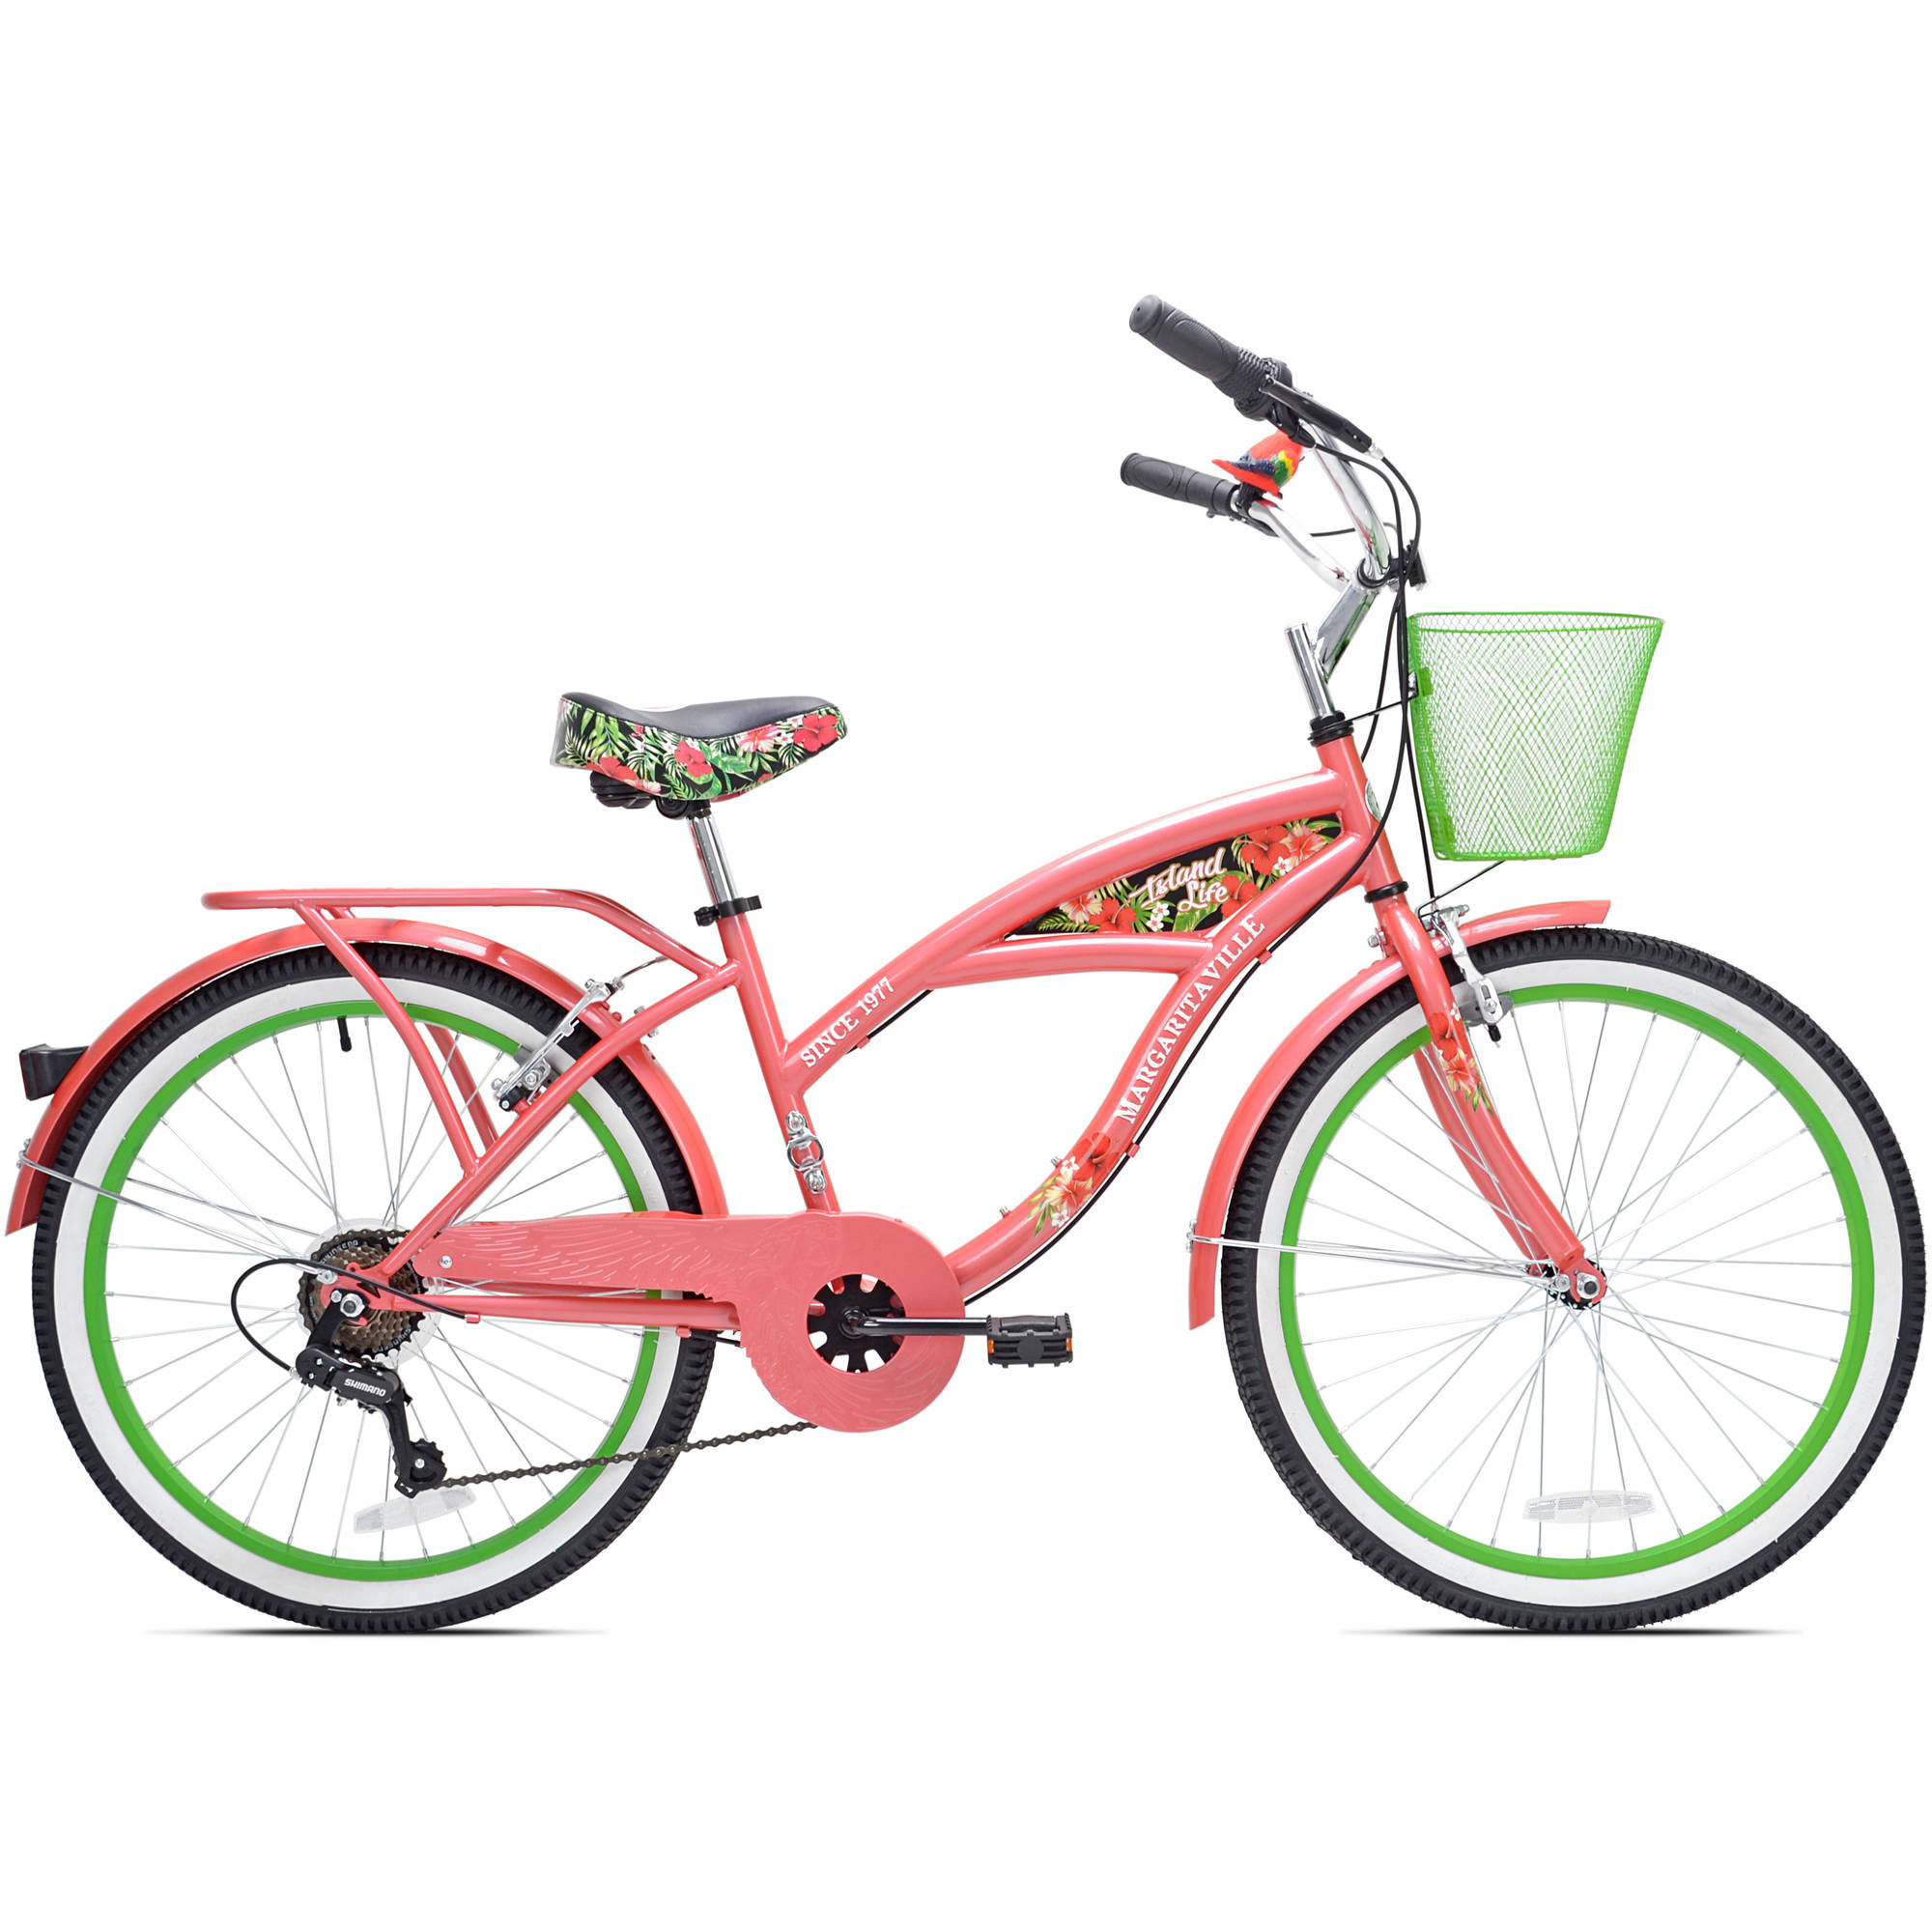 "24"" Girls Margaritaville Island Life Multi Speed Bicycle, Coral/Green"